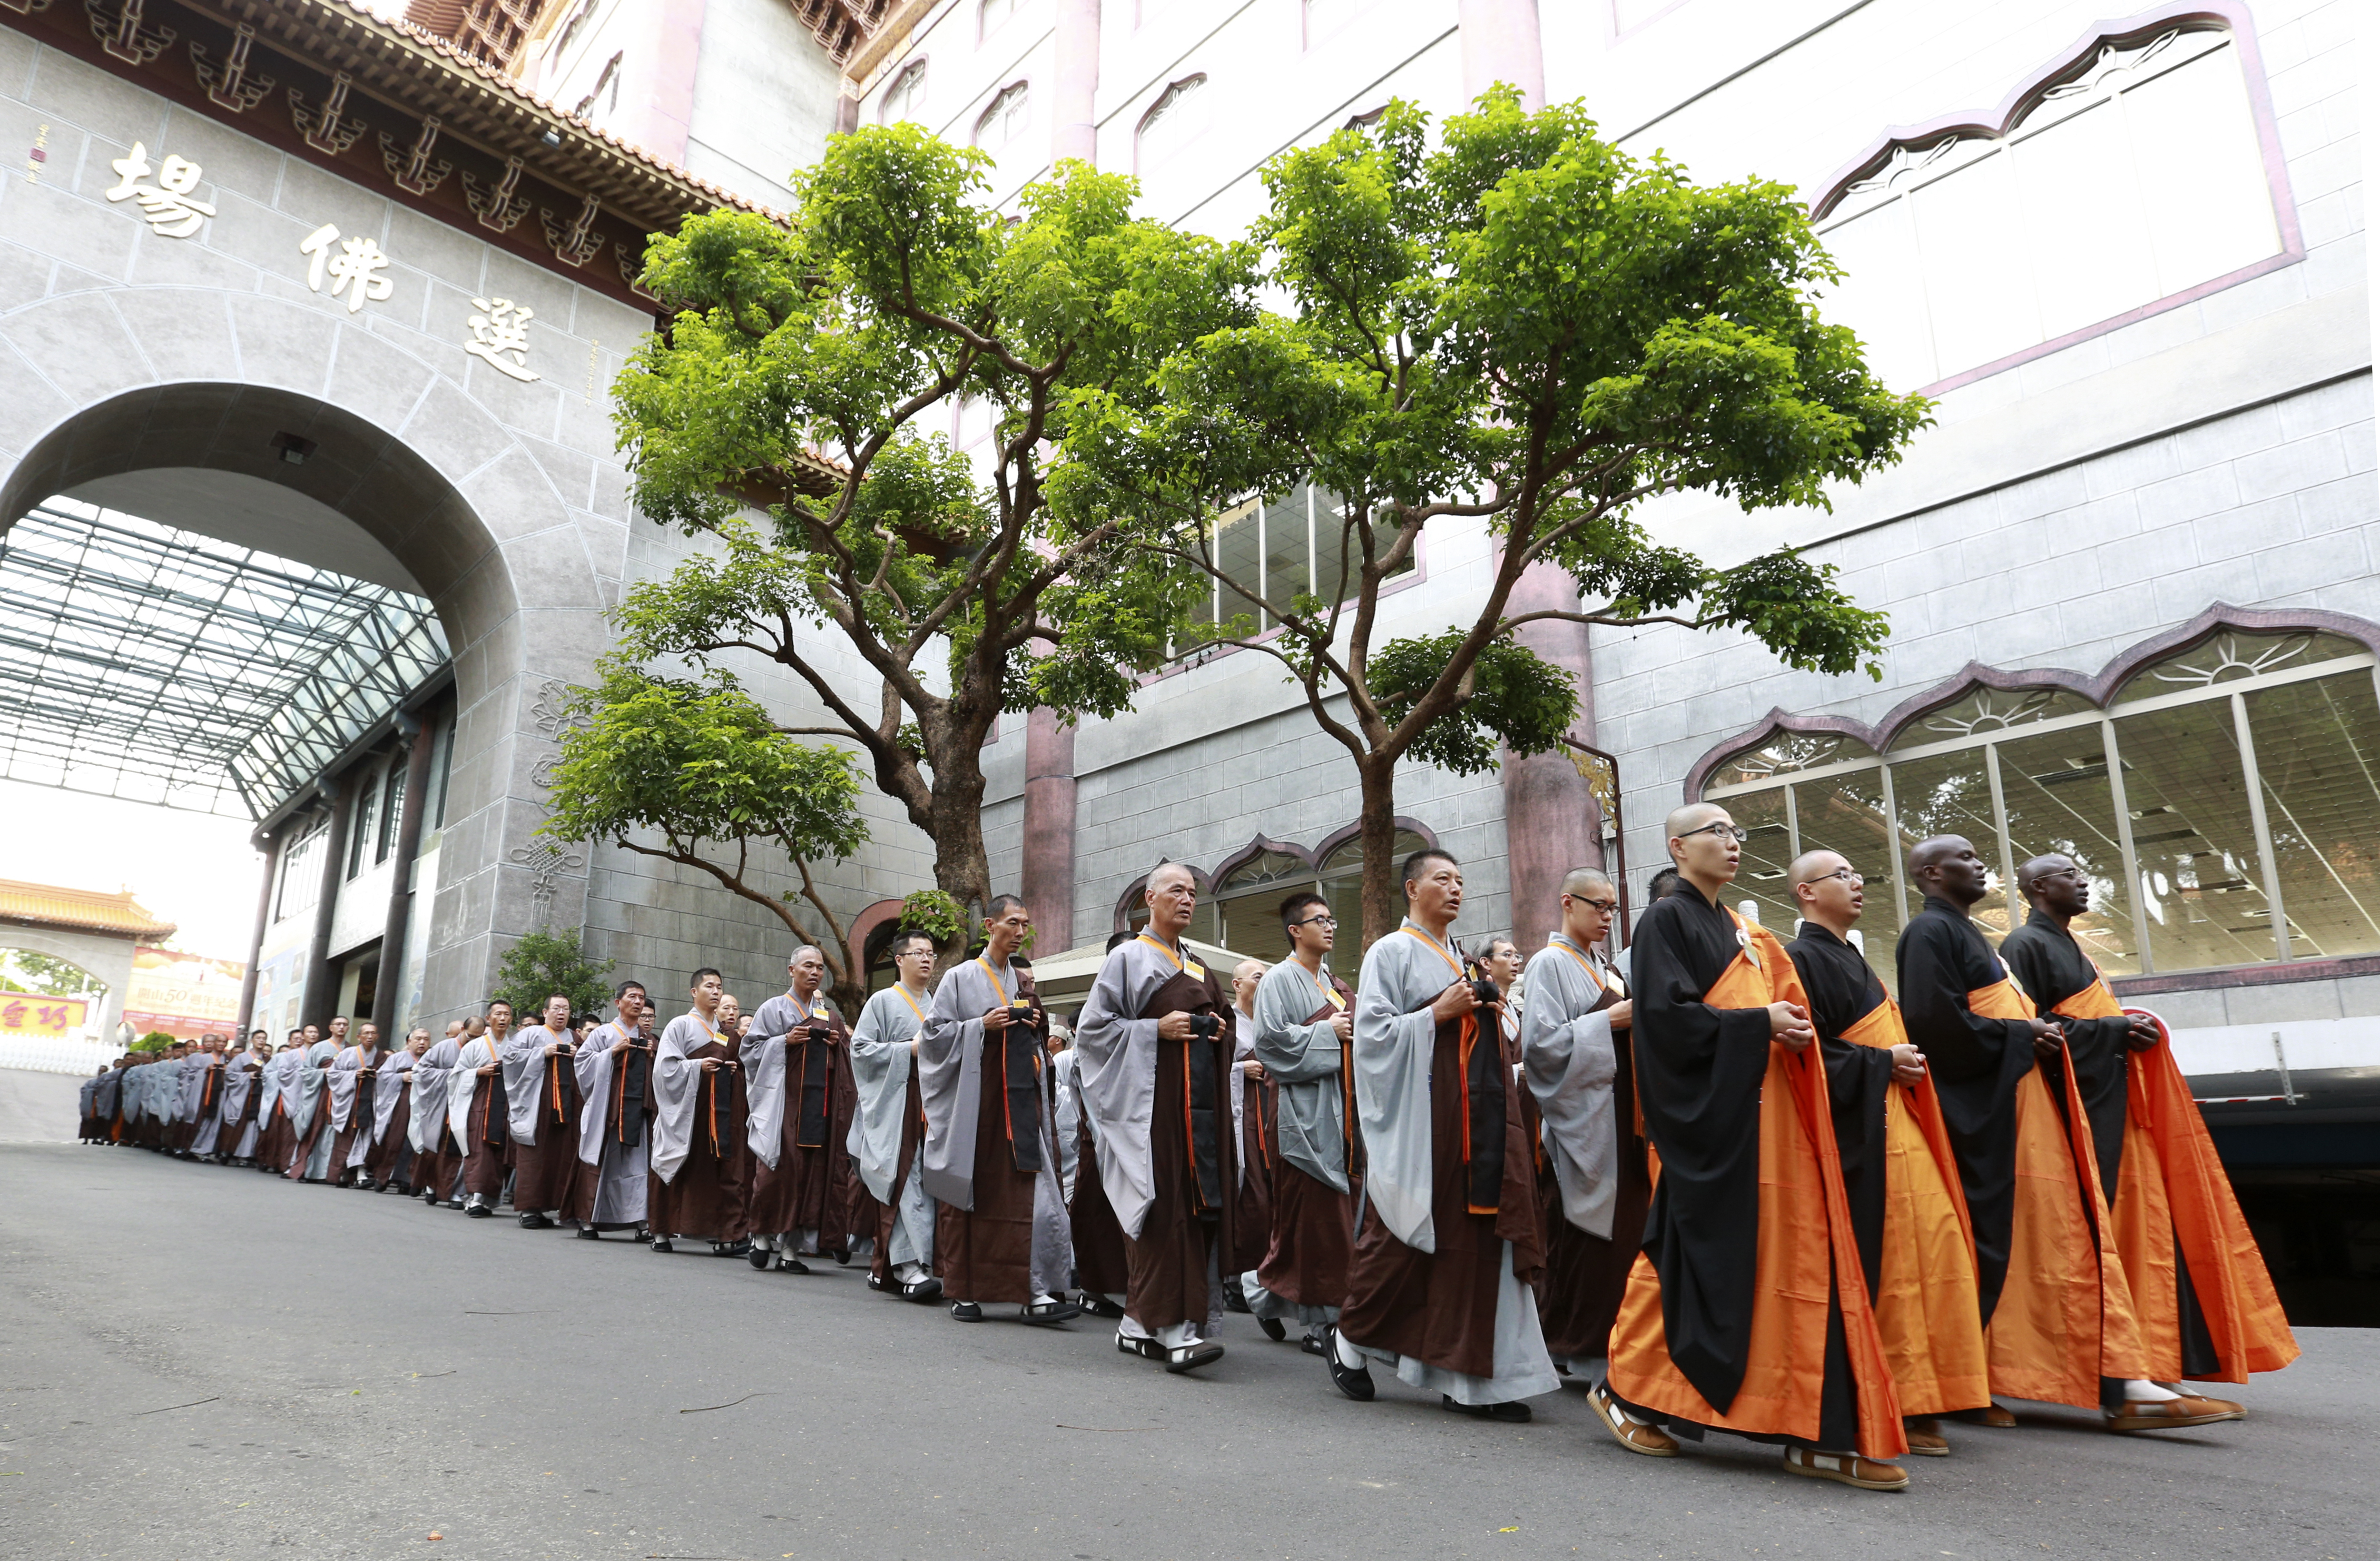 Preceptees walk in formation behind their guiding venerables. They are wearing the jiasha robe, holding the sitting mat before them, and carrying the alms bowl in a bag worn over the shoulder. Fo Guang Shan Headquarters, 2016. Photo by Life News Agency.